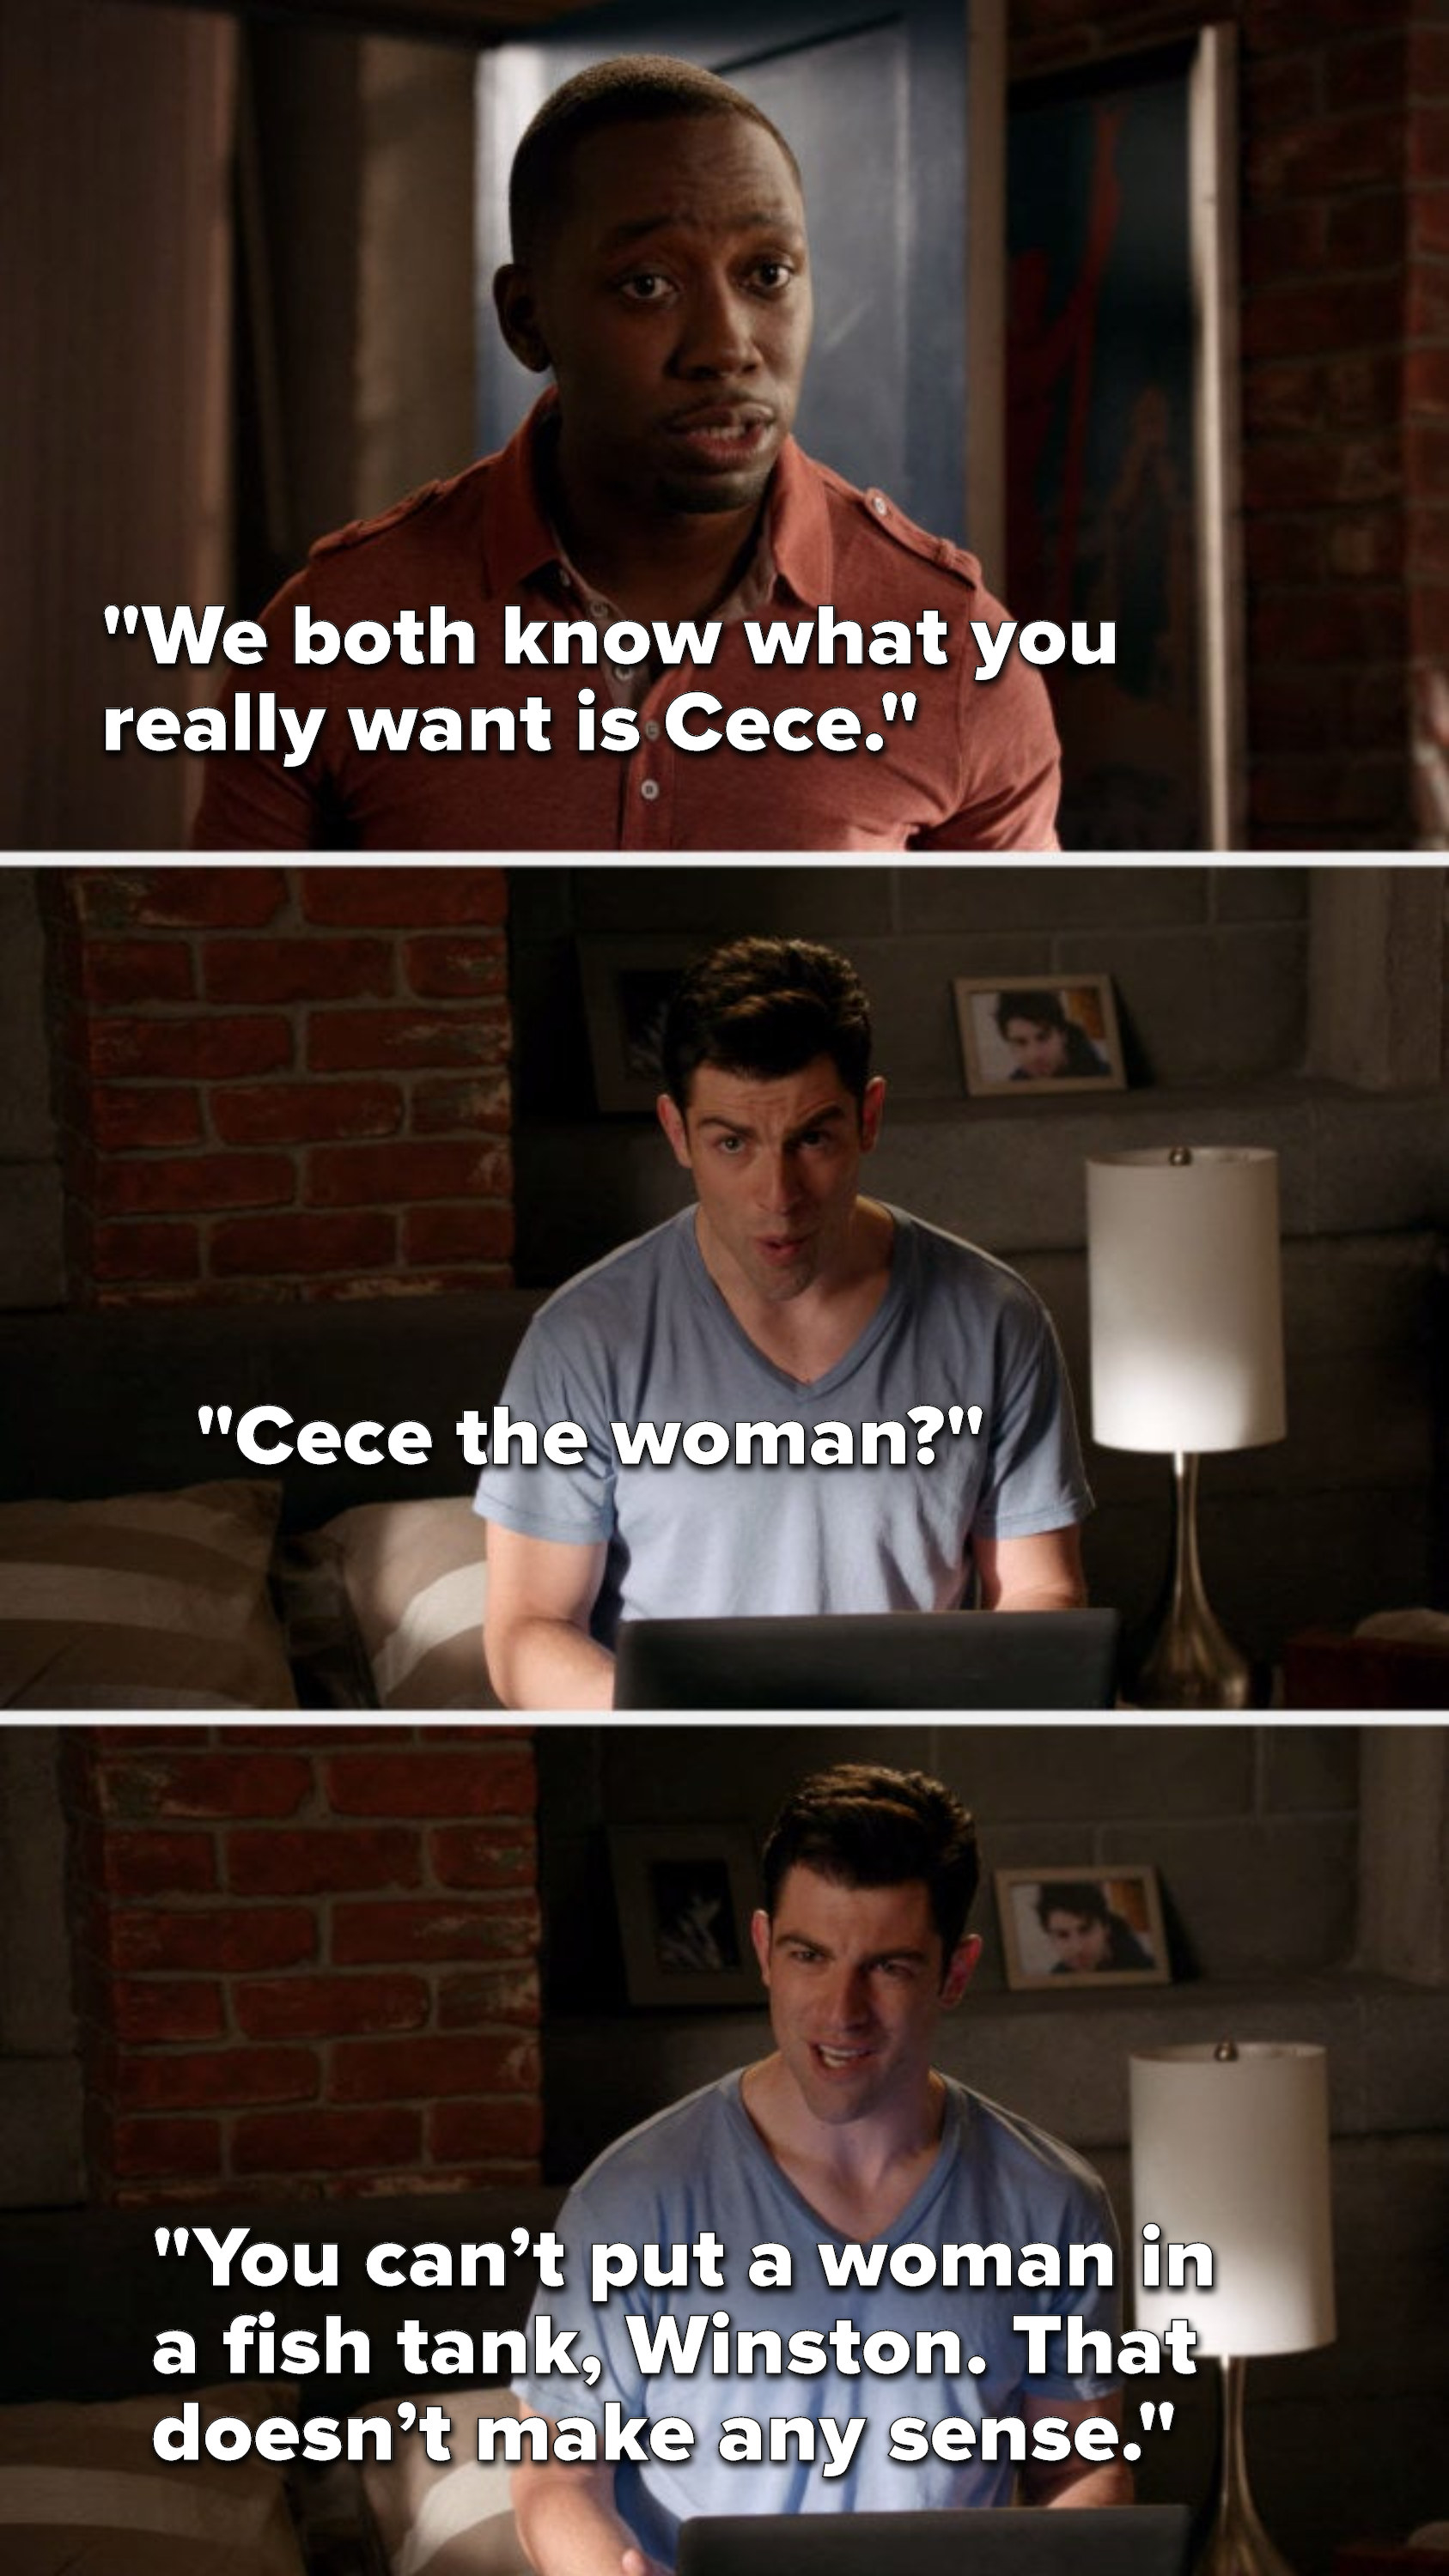 """Winston says, """"We both know what you really want is Cece,"""" and Schmidt says, """"Cece the woman, you can't put a woman in a fish tank, Winston, that doesn't make any sense"""""""